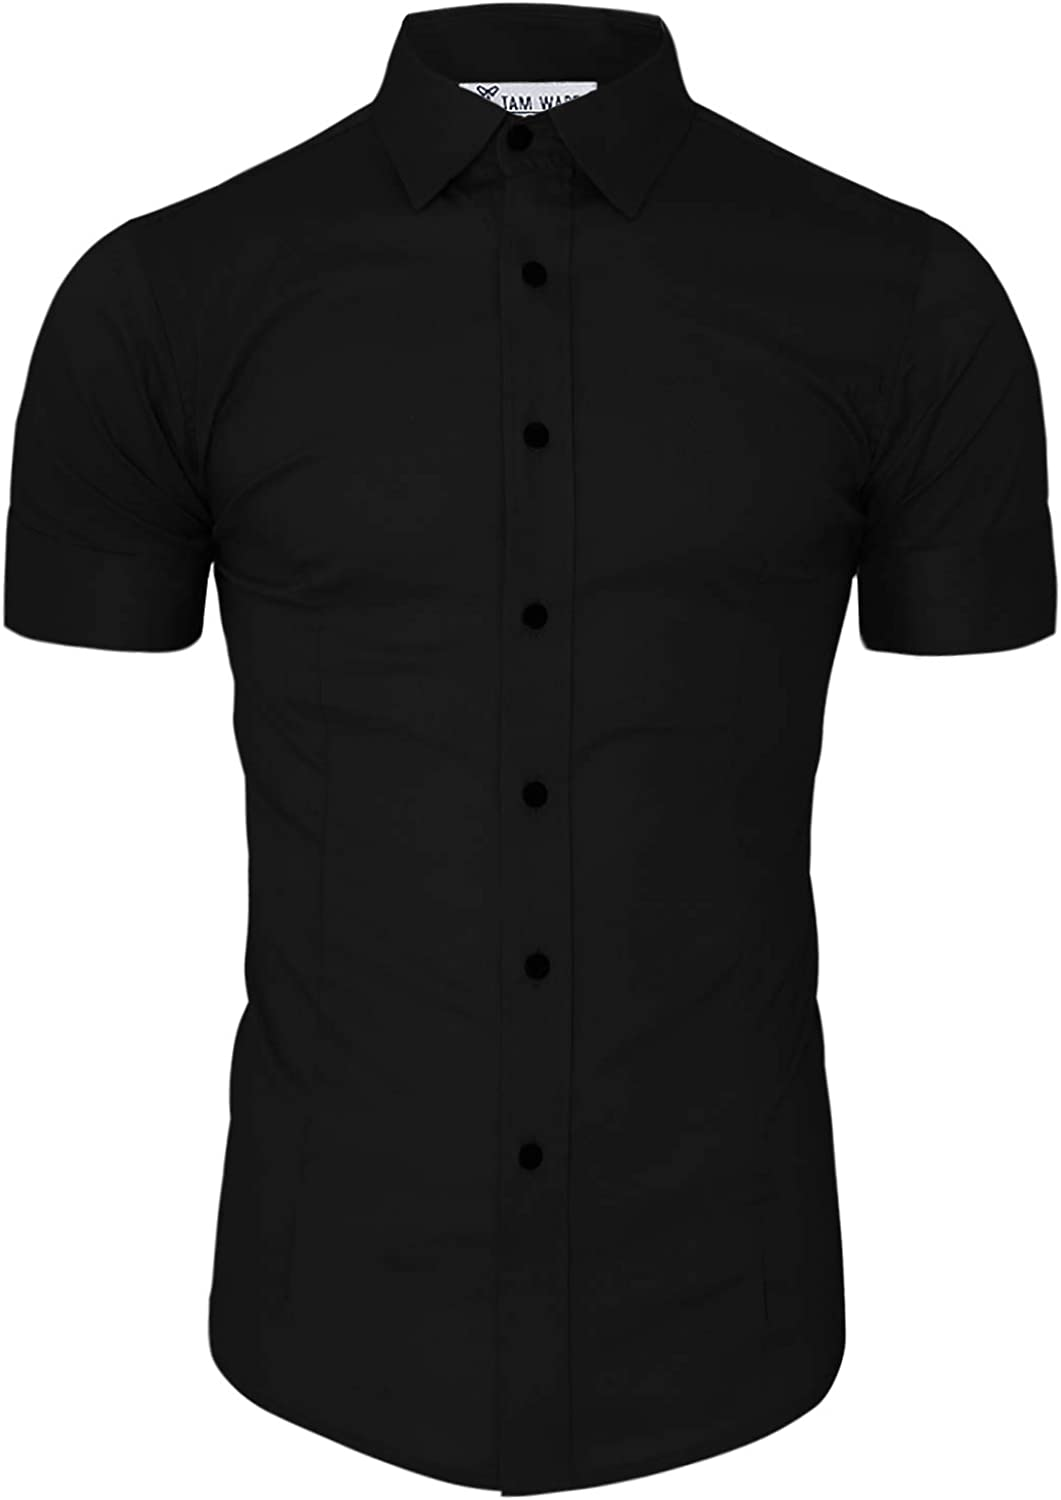 TAM WARE Mens Short Sleeve Wrinkle Free Button Down Shirt